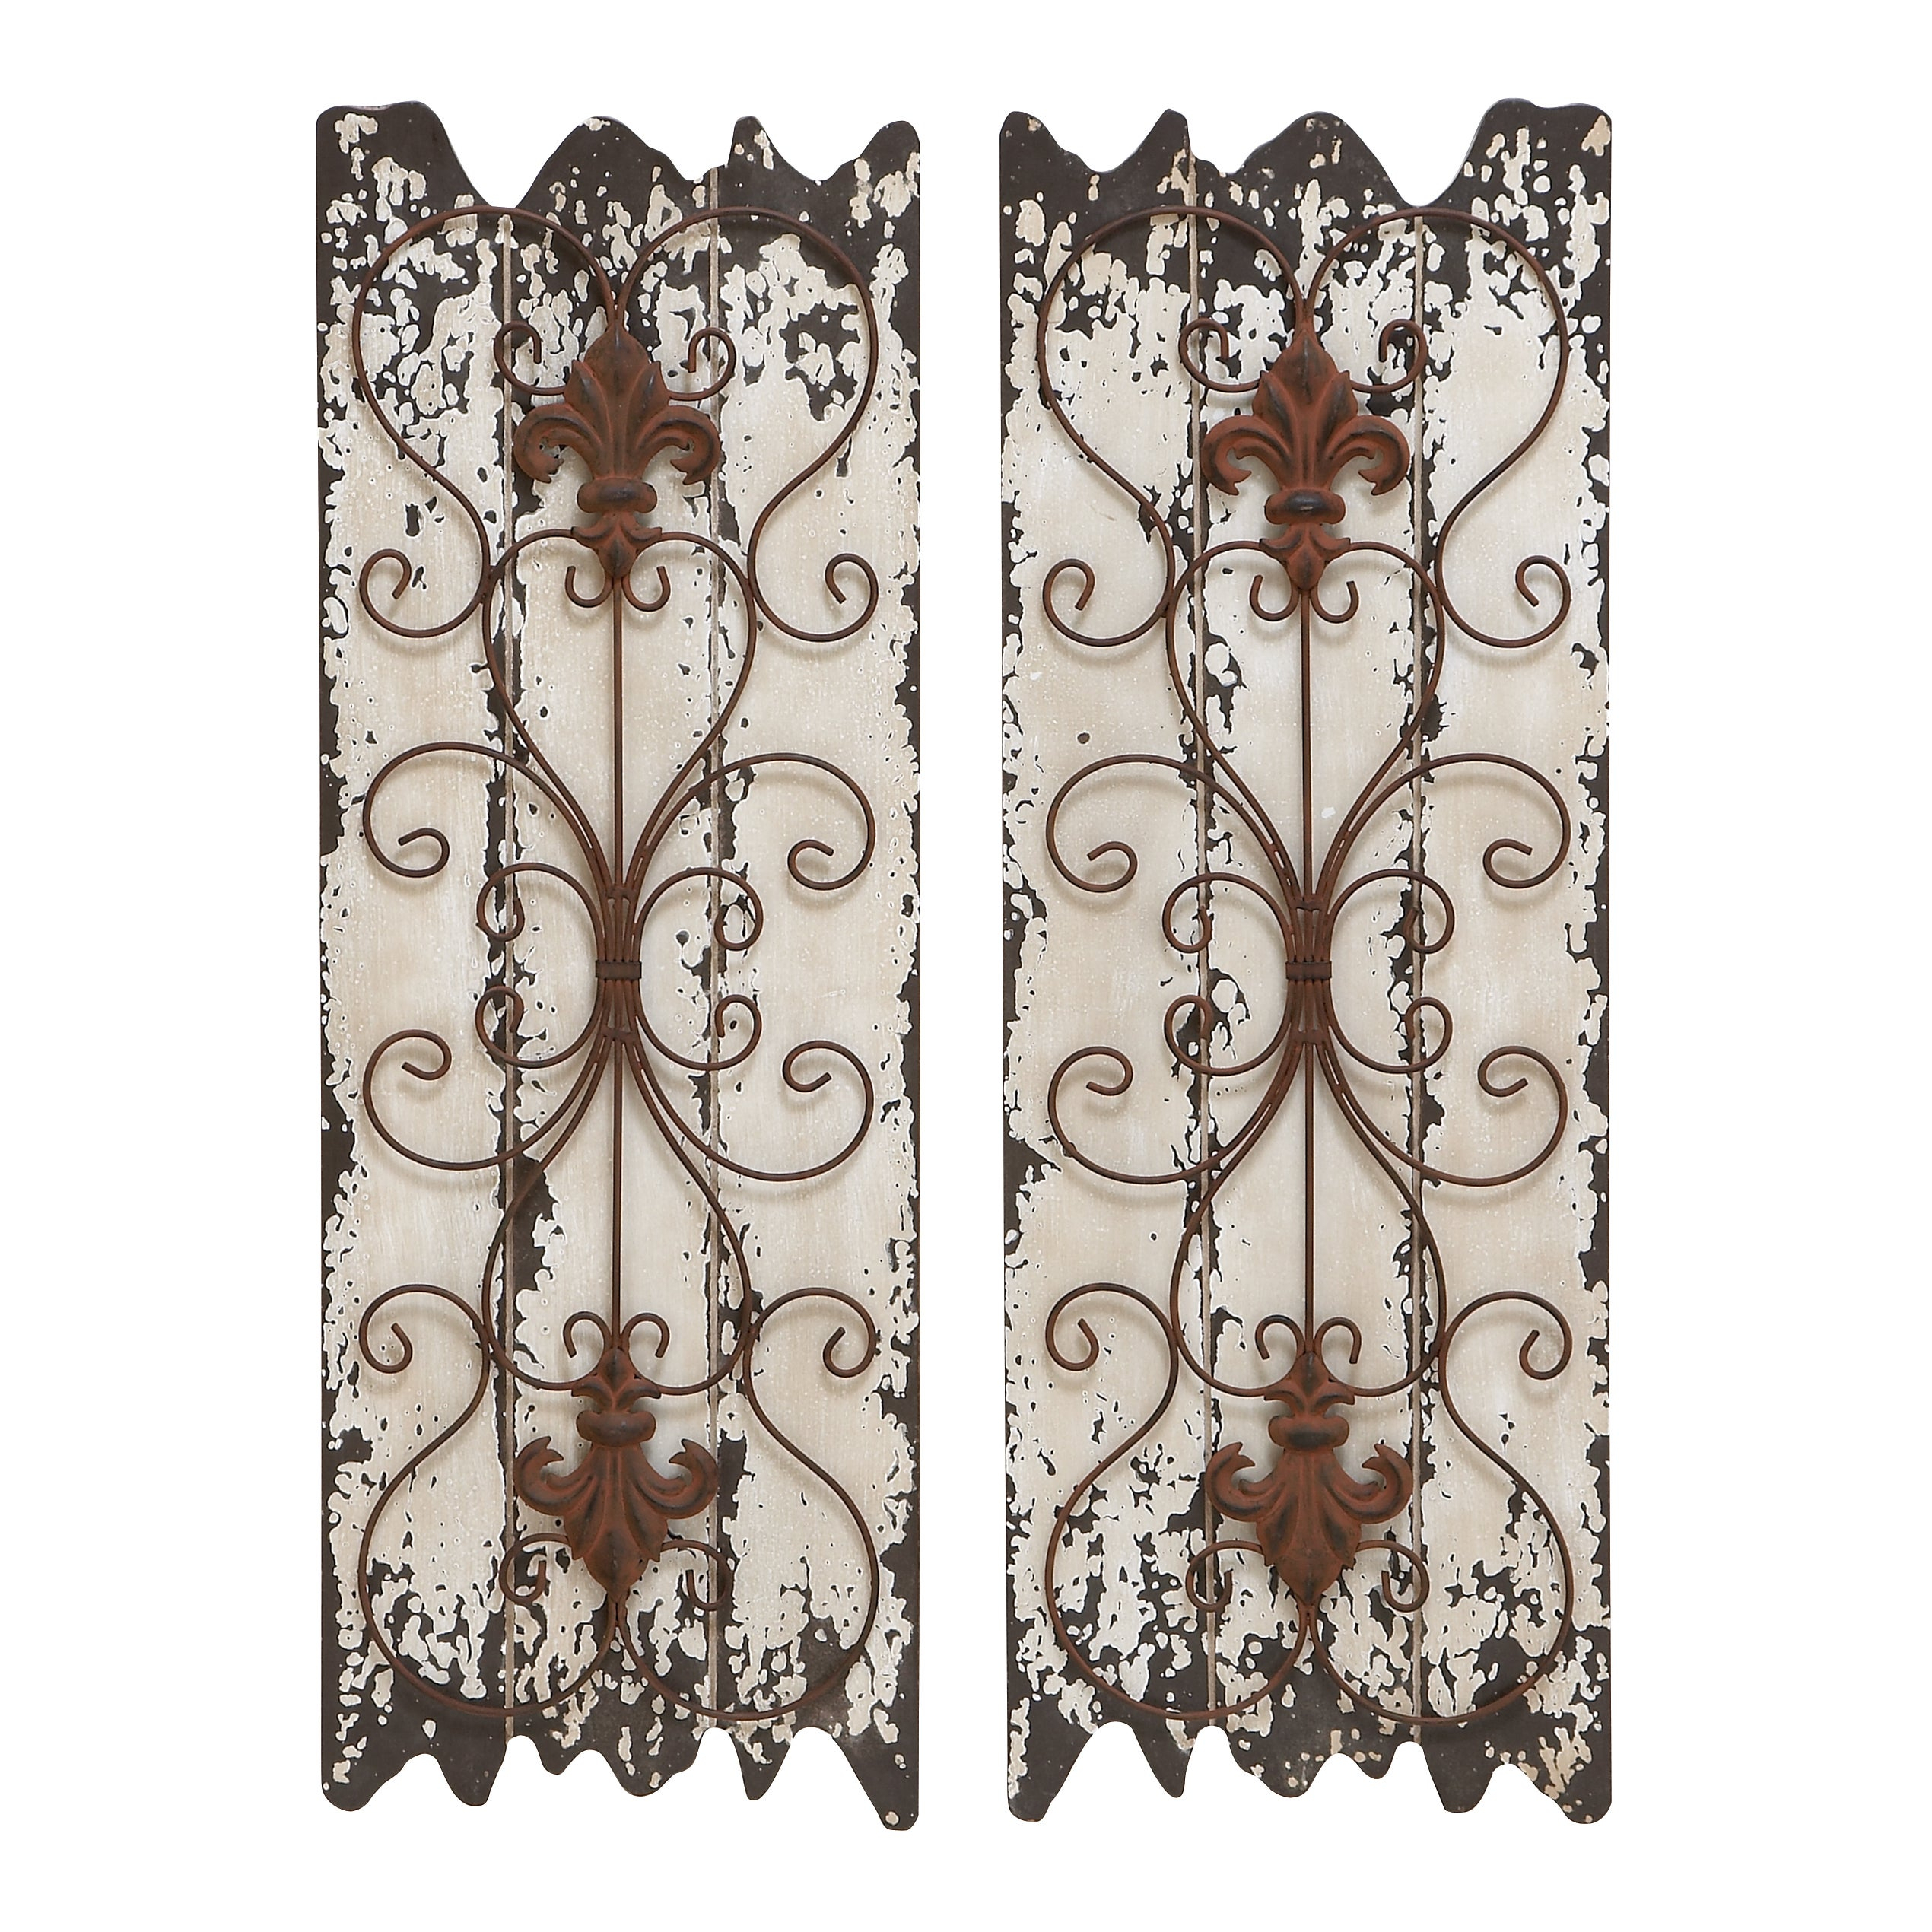 Wood And Metal Wall Decor Panel (set Of 2) – White In 4 Piece Metal Wall Plaque Decor Sets (View 11 of 30)